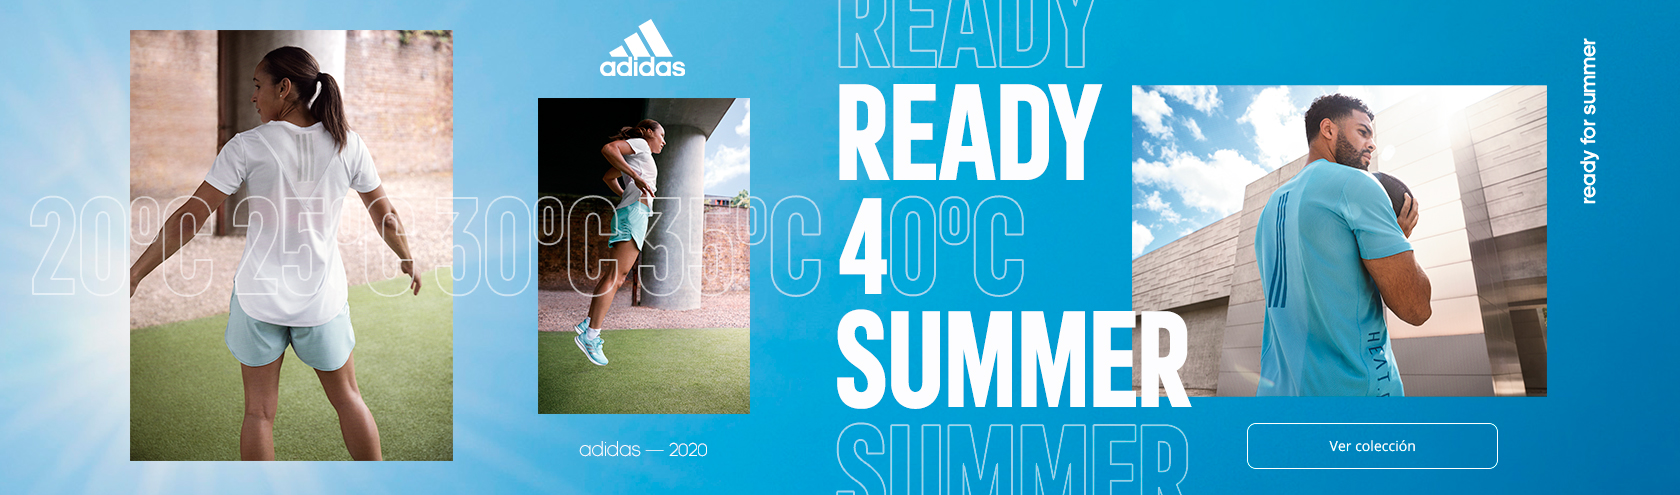 Adidas Summer en Paris.cl